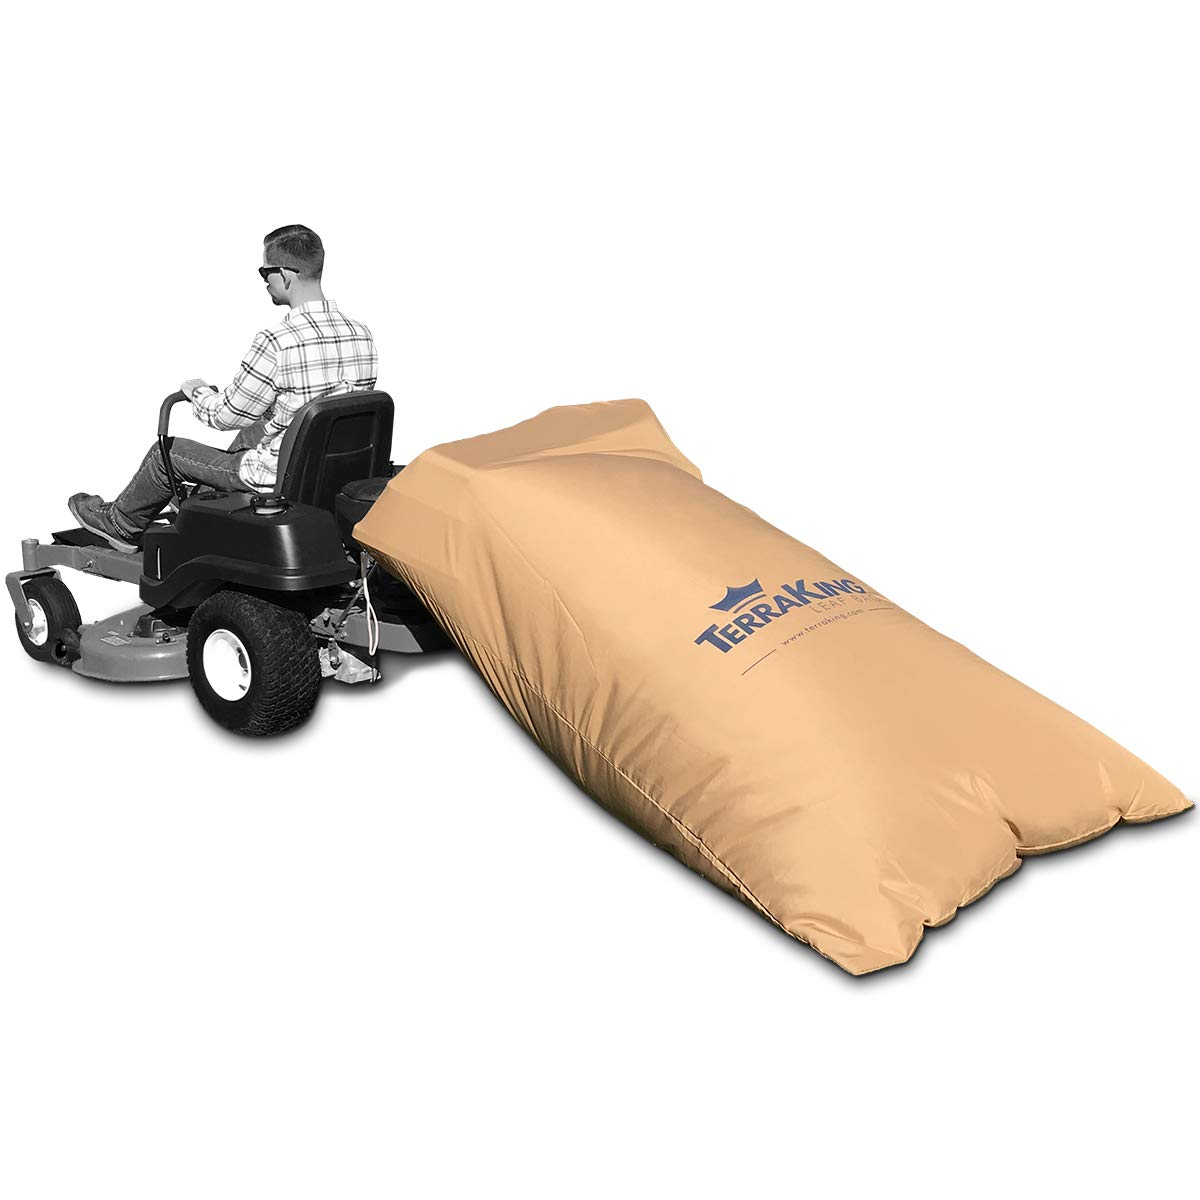 TerraKing 54 cu. ft. Standard Leaf Bag - 120-in. opening [ST95000]